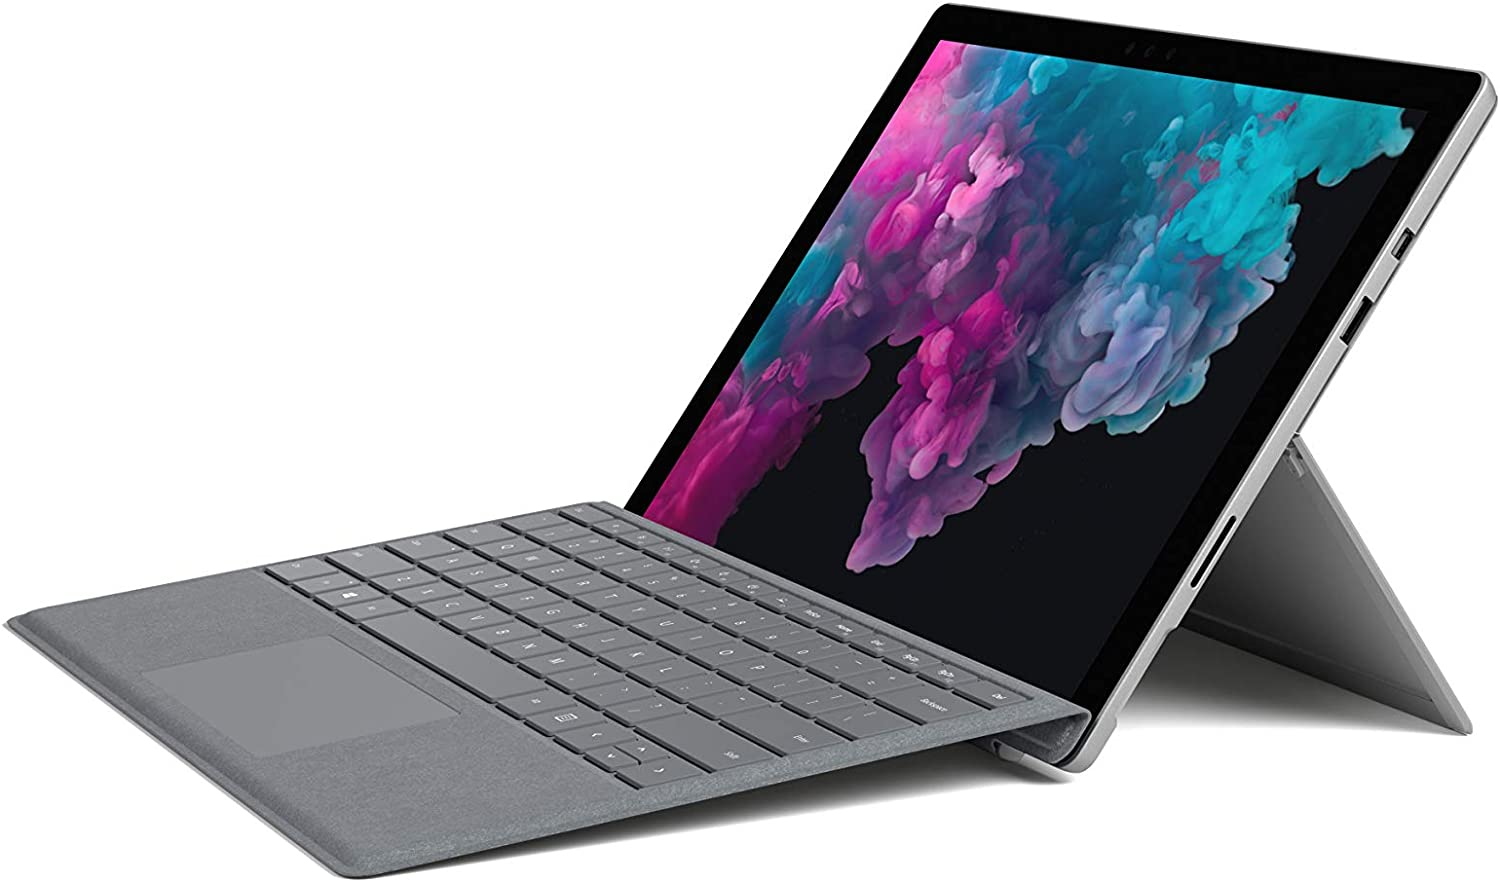 Microsoft Surface Pro 6 (Intel Core i5, 128GB SSD, 8GB RAM) + Type Cover Bundle (Platinum)